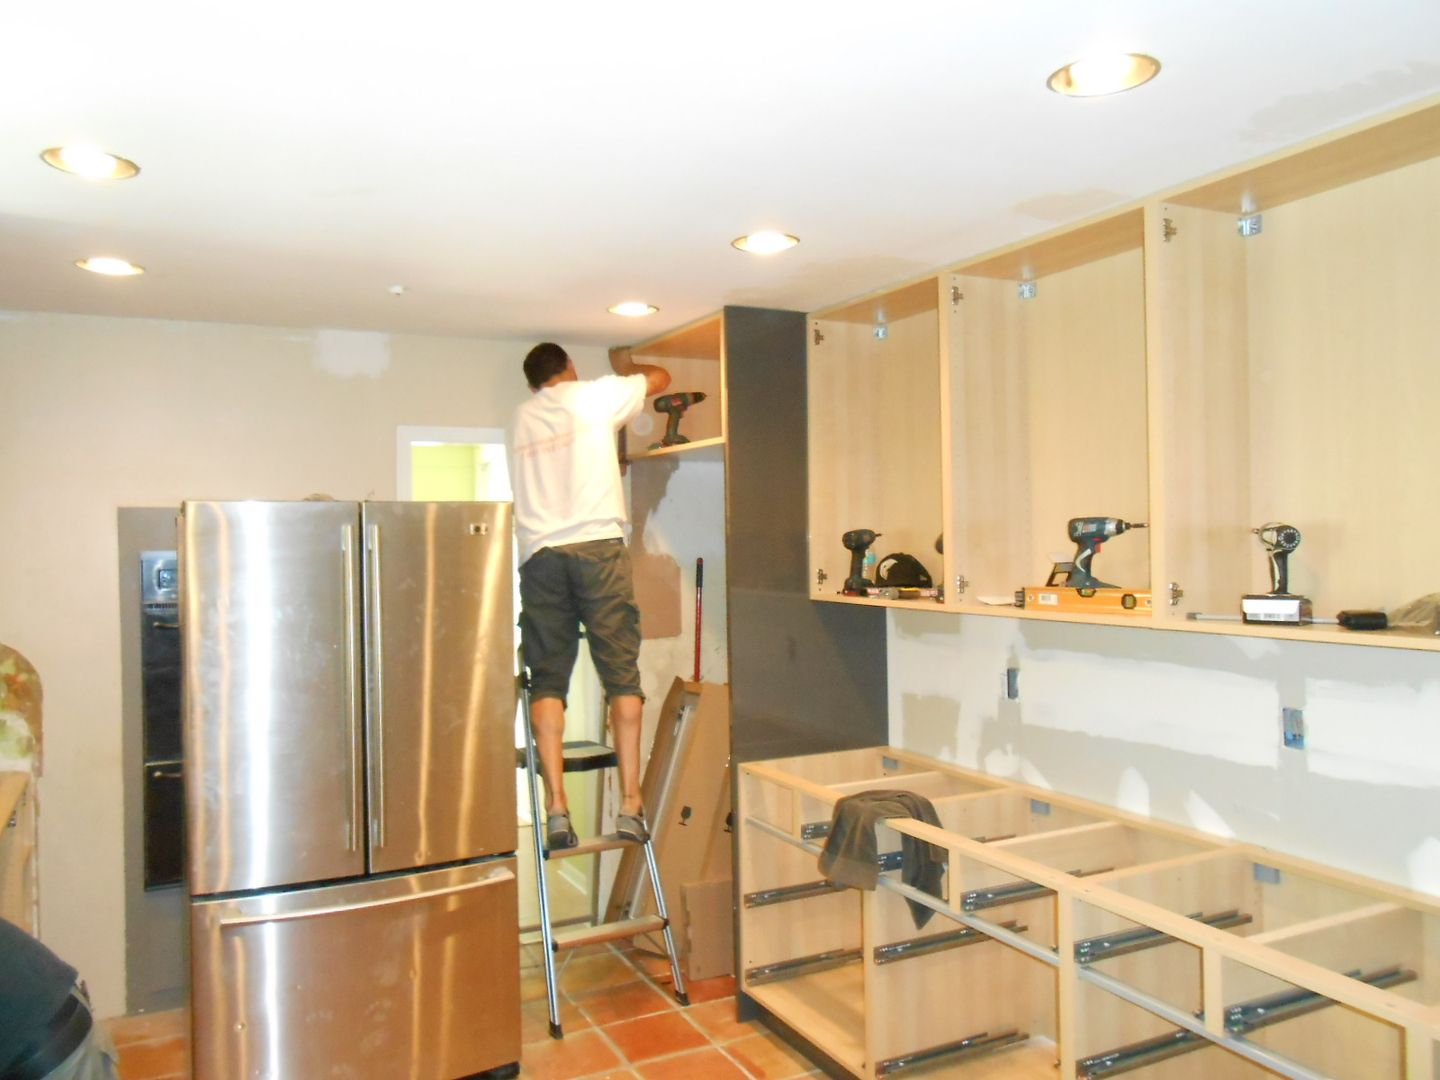 Omaha Cabinet Installer Cabinet Installation Service And Cost In Omaha Ne Epp Kitchen Design Countertops Installing Kitchen Cabinets Cost Of Kitchen Cabinets